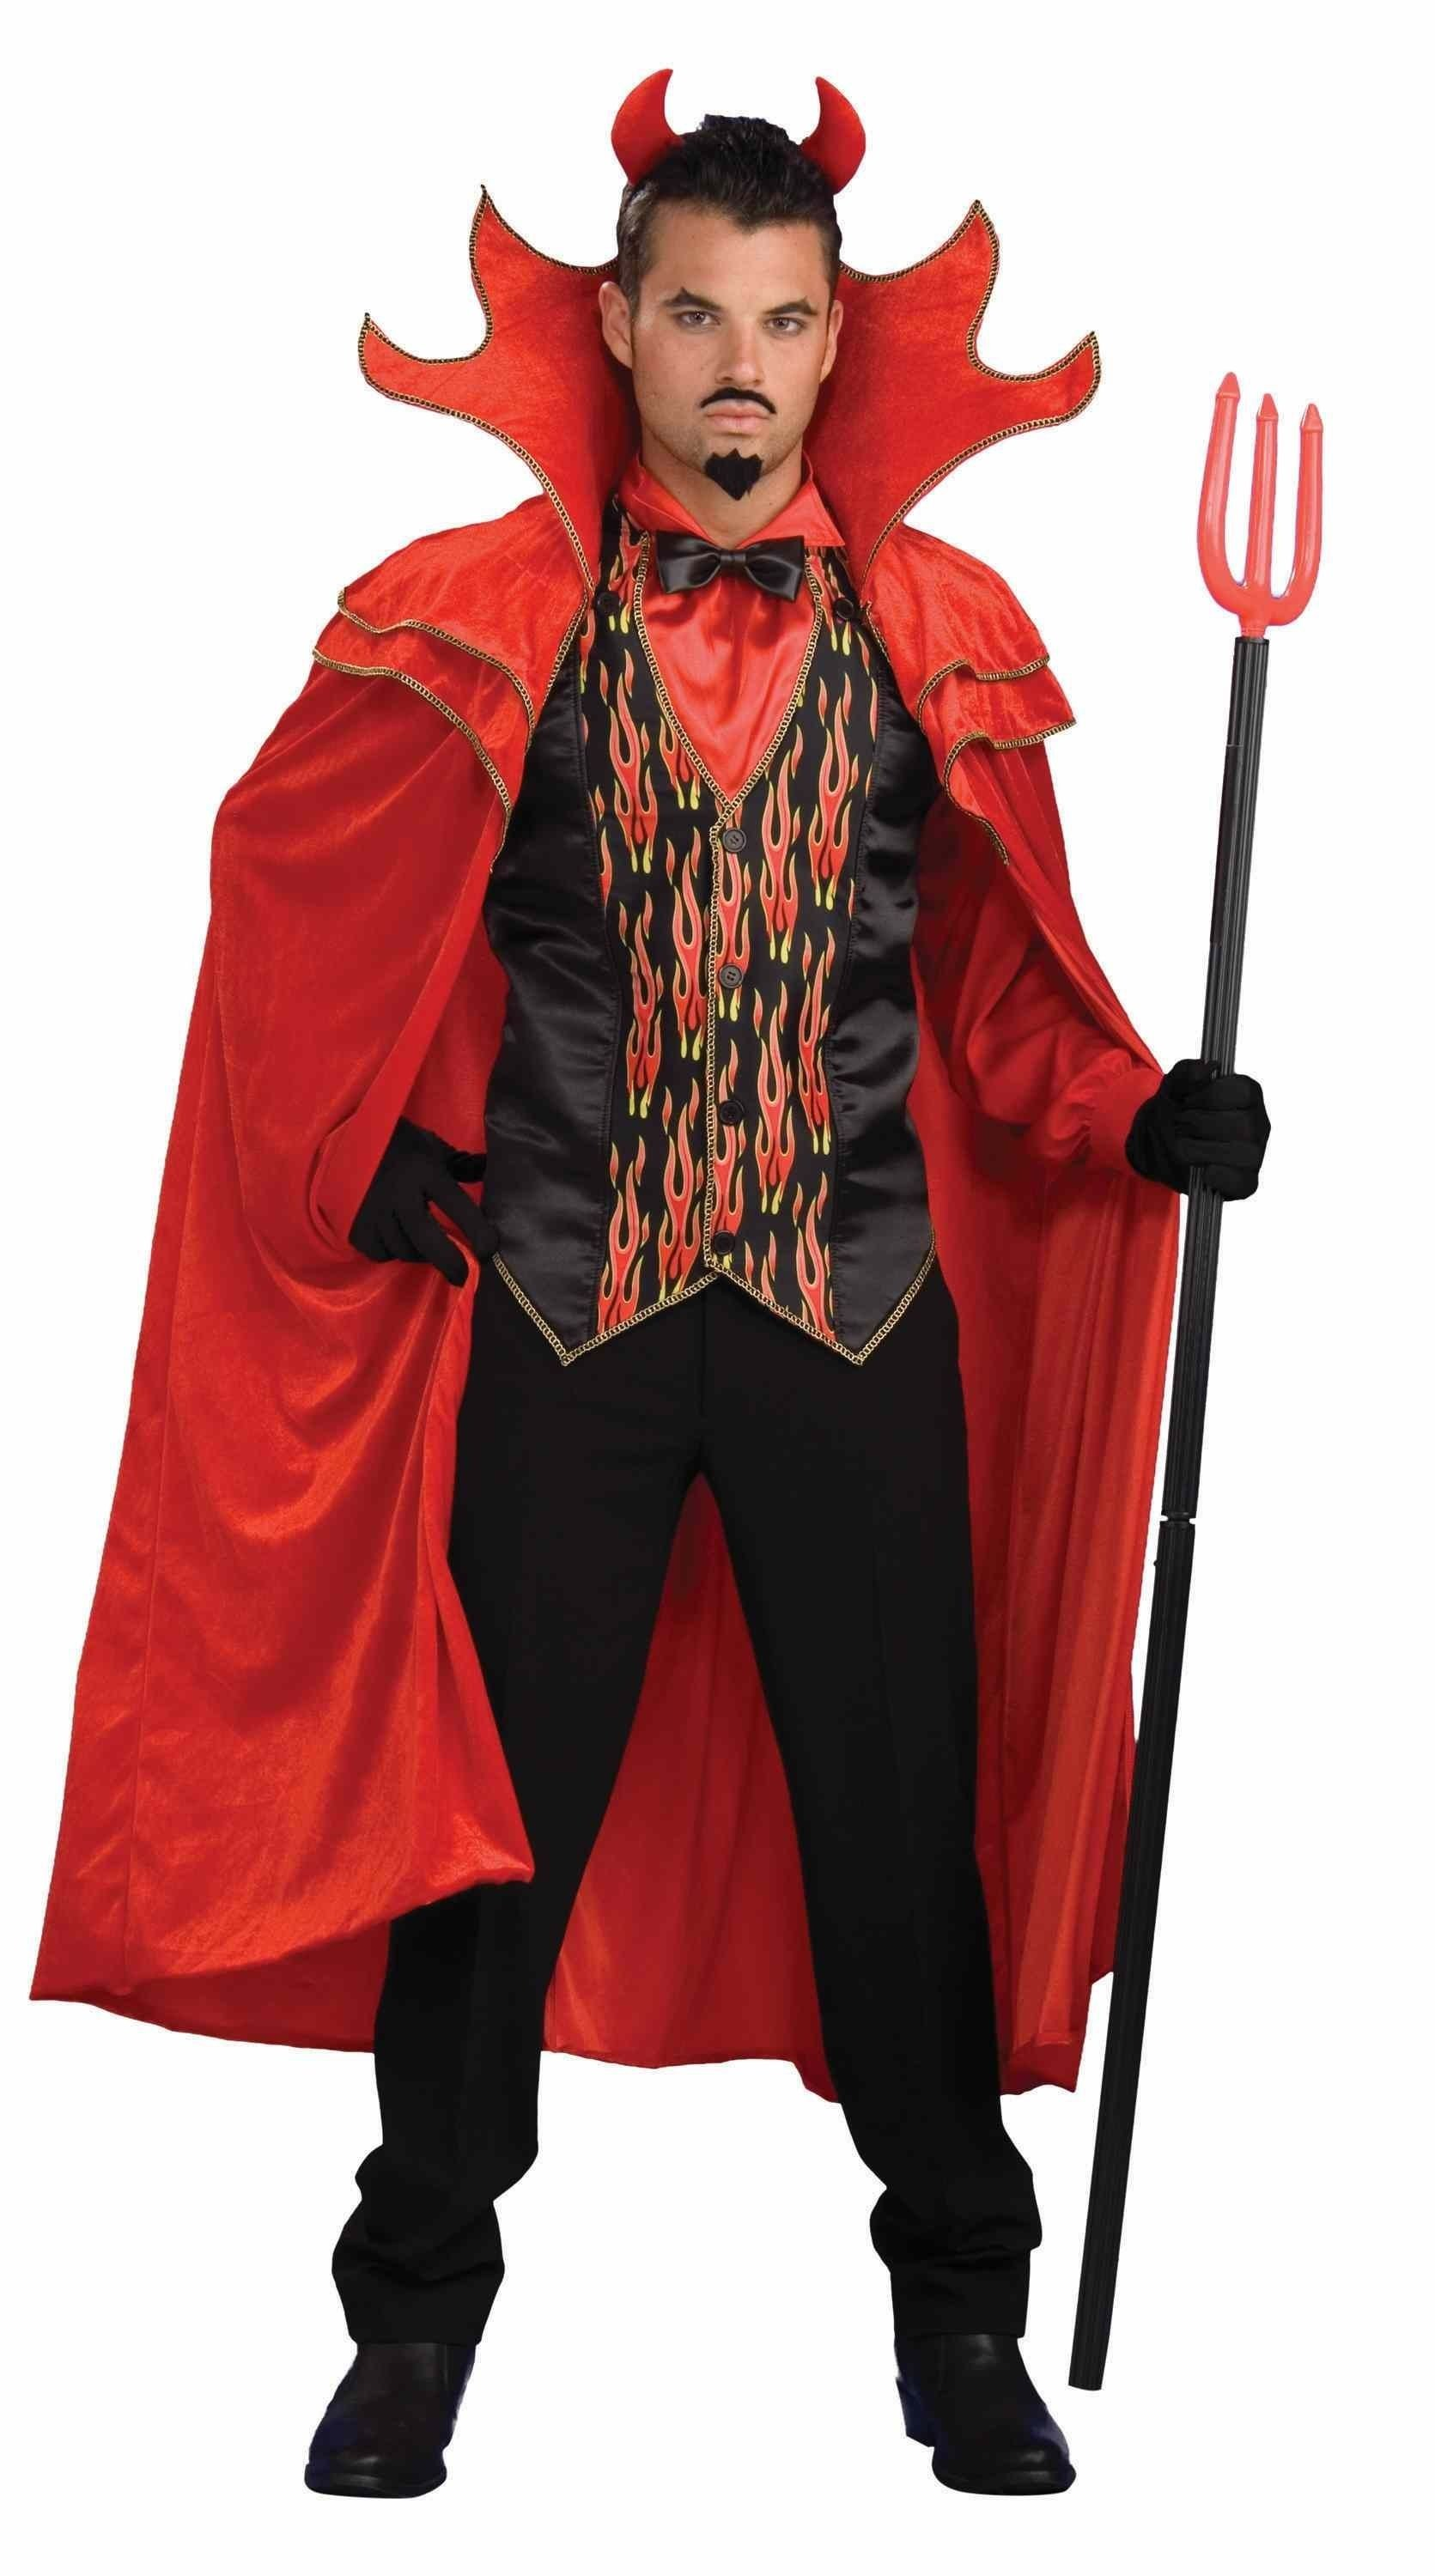 10 Great Halloween Costumes Ideas For Boys devil costume idea boys halloween pinterest costumes 1 2021